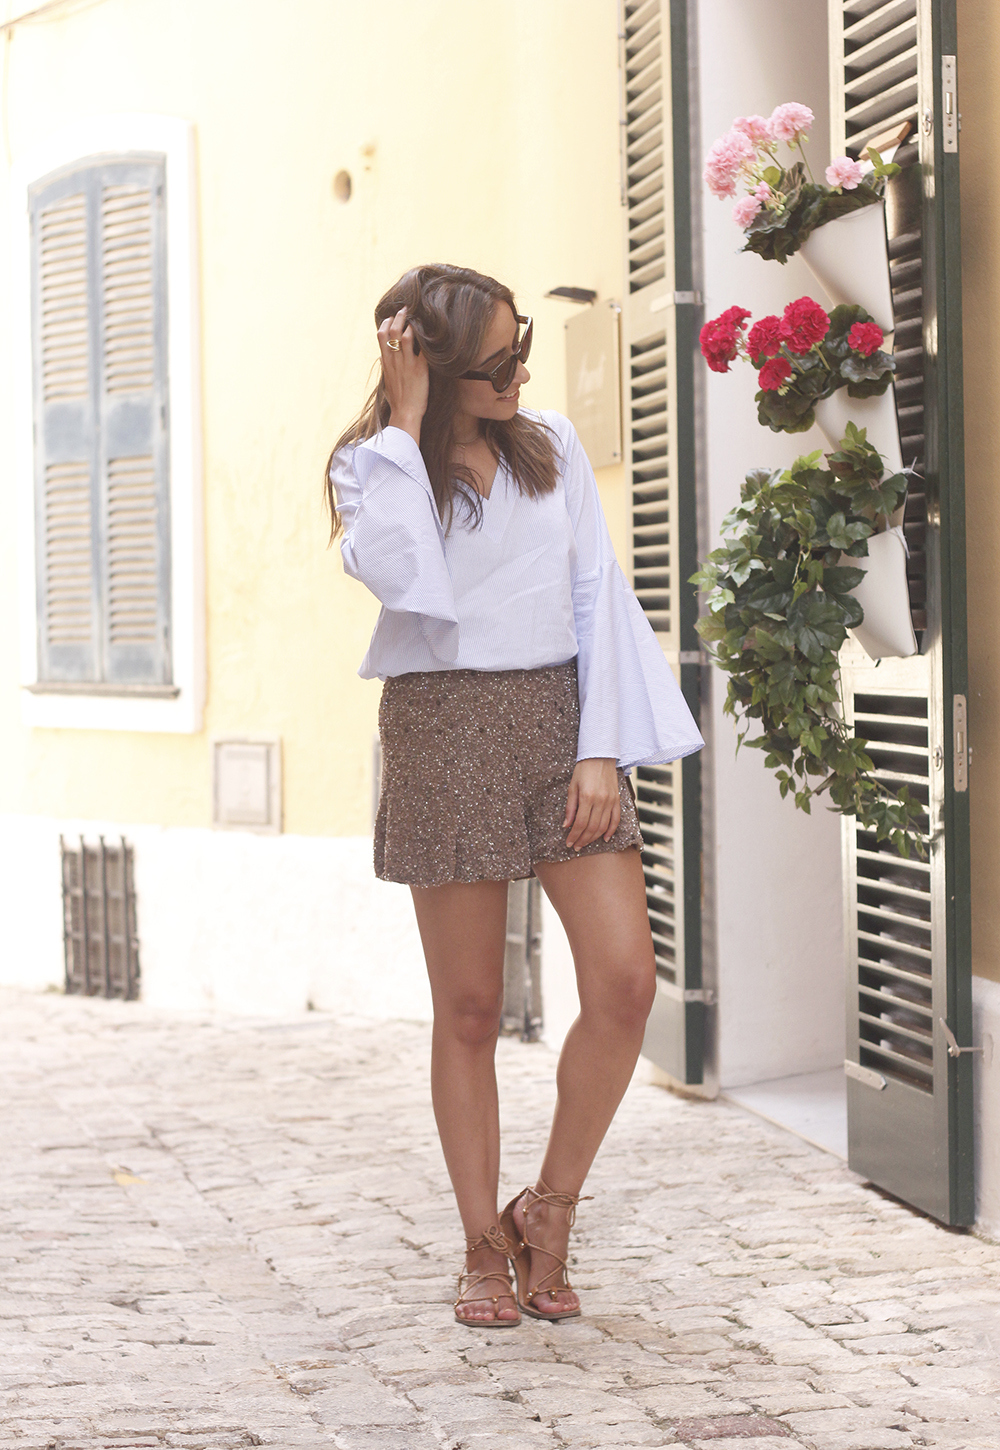 sequined shorts bell sleeves striped shirt summer flat sandals summer fashion outfit02